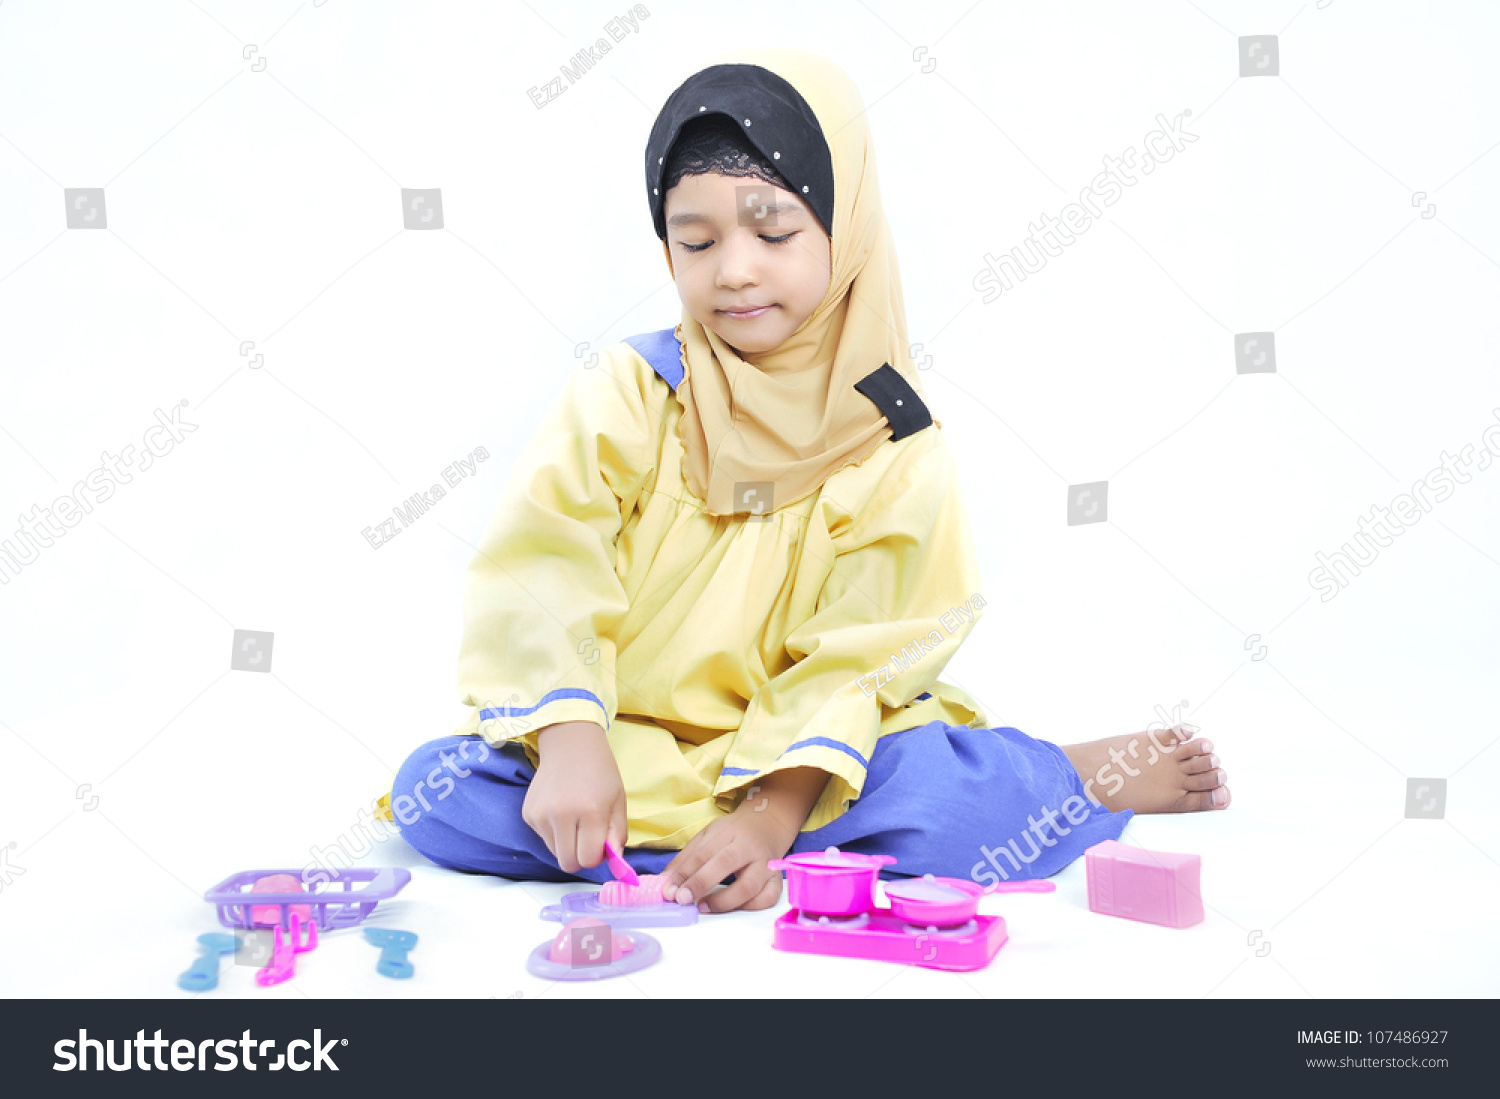 Happy young and cute muslim girl playing with a miniature cooking utensil toy in white